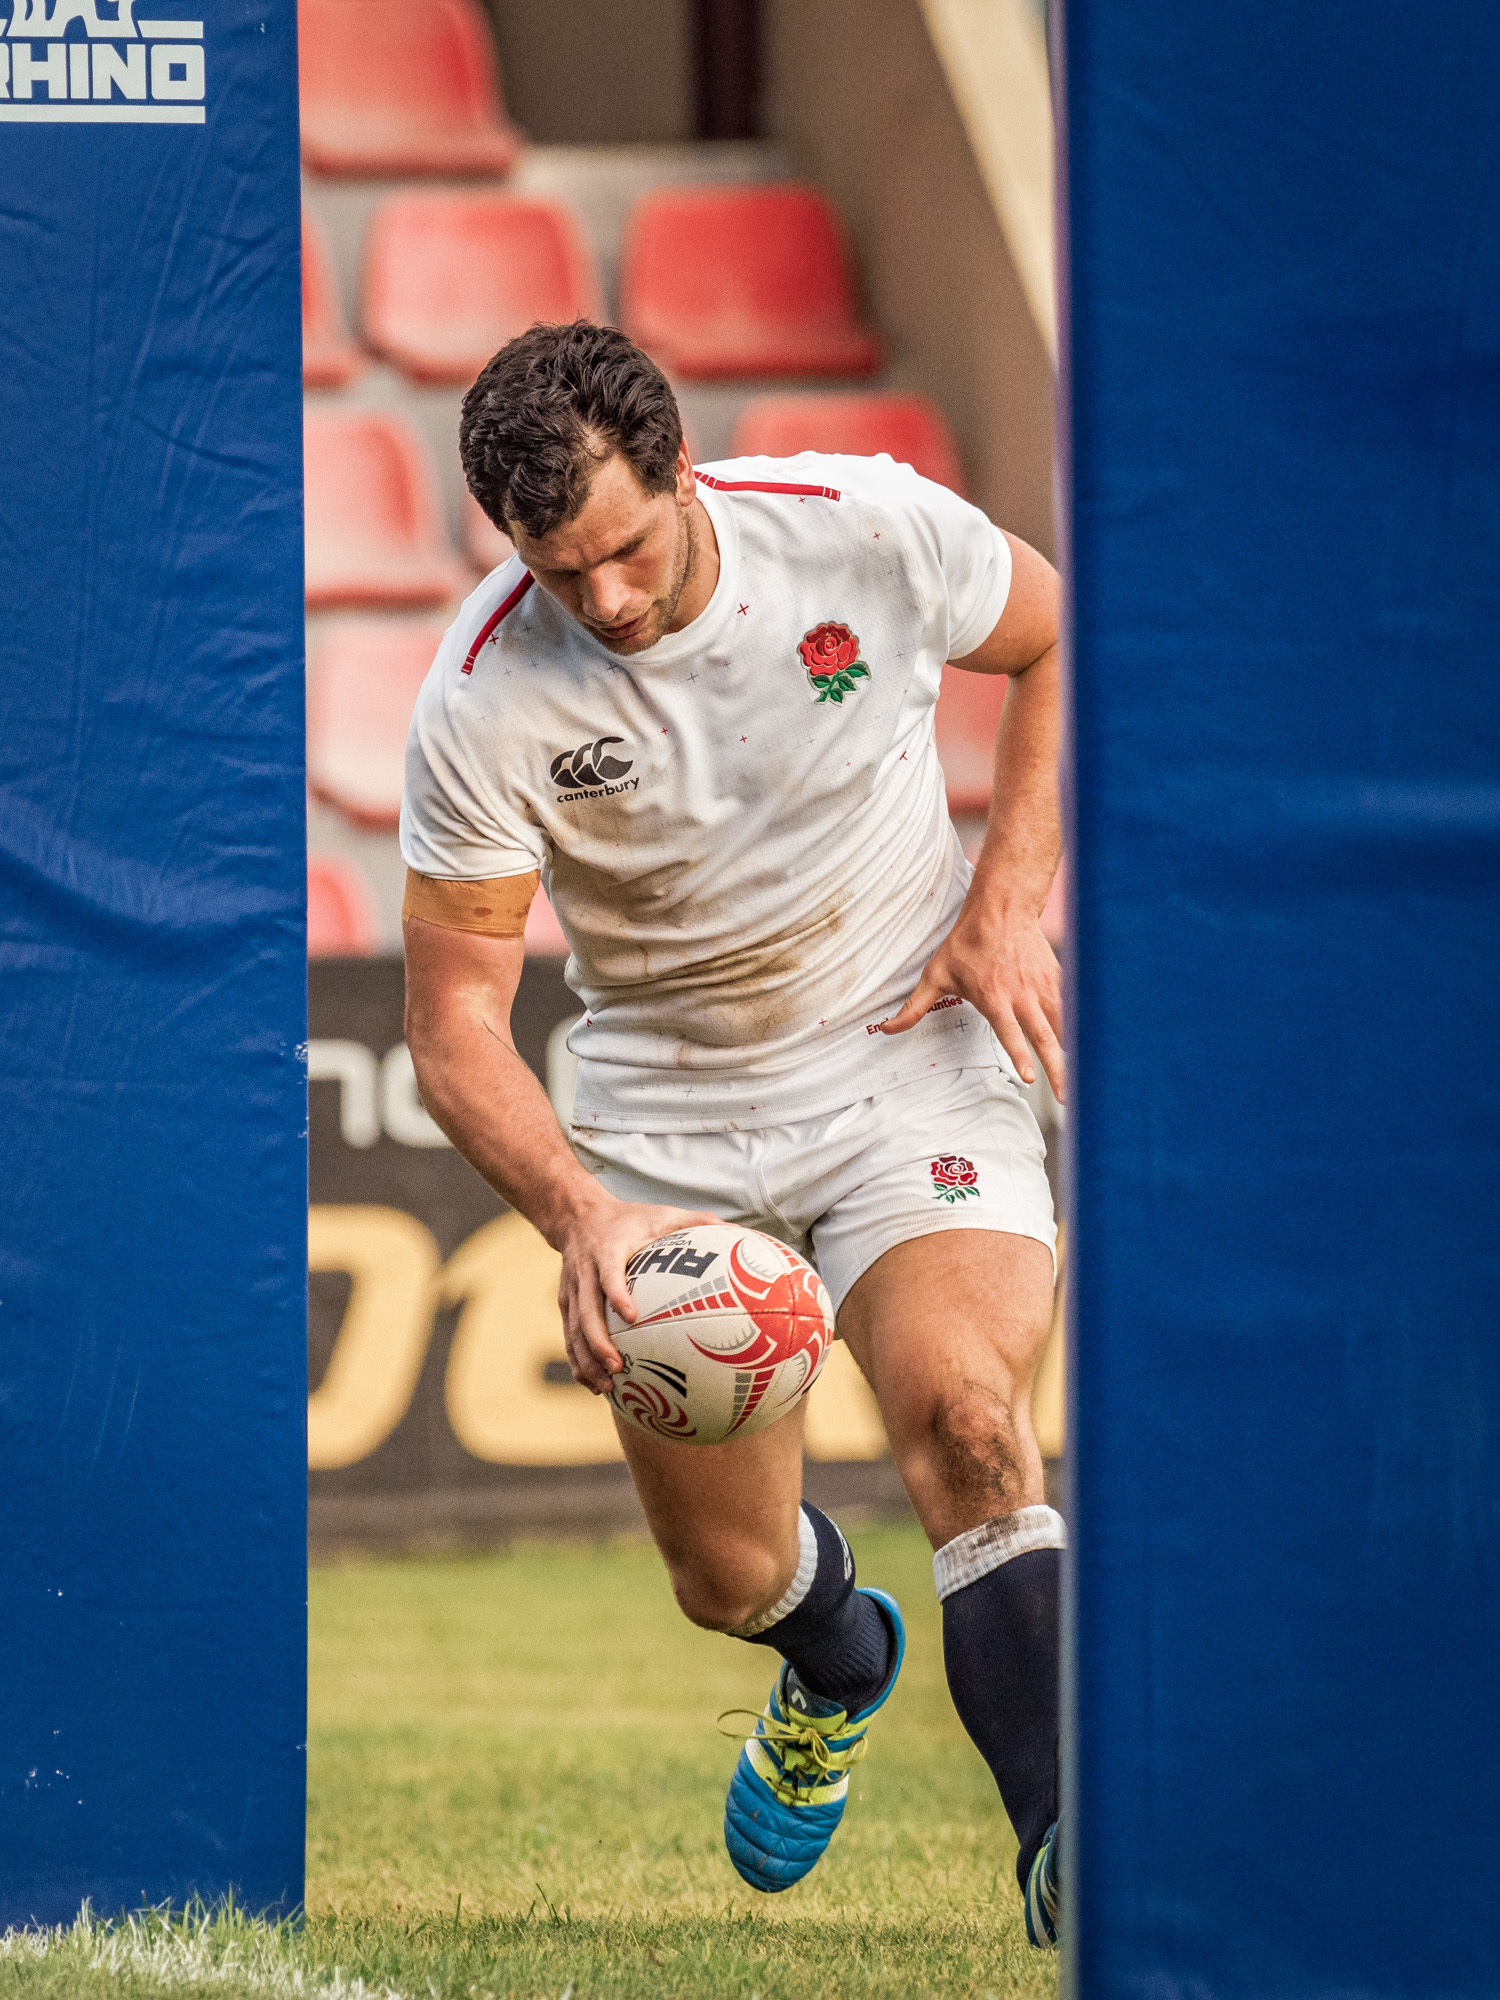 Kieran Moffat of Old Elthamians with England Counties' second try